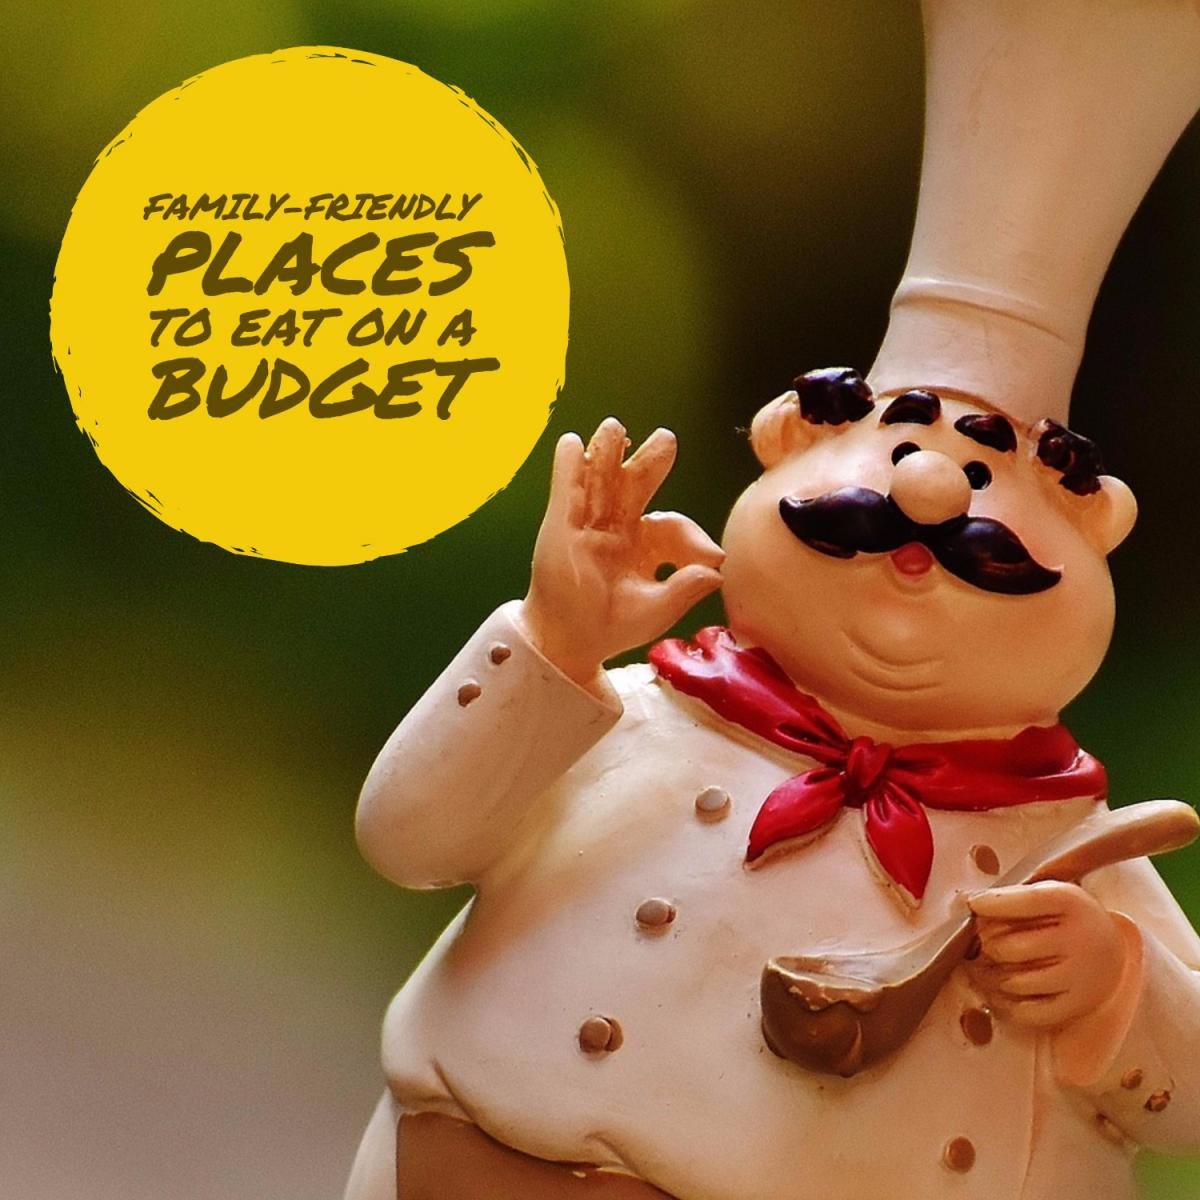 Tampa Bay's Best Family-Friendly Places to Eat on a Budget